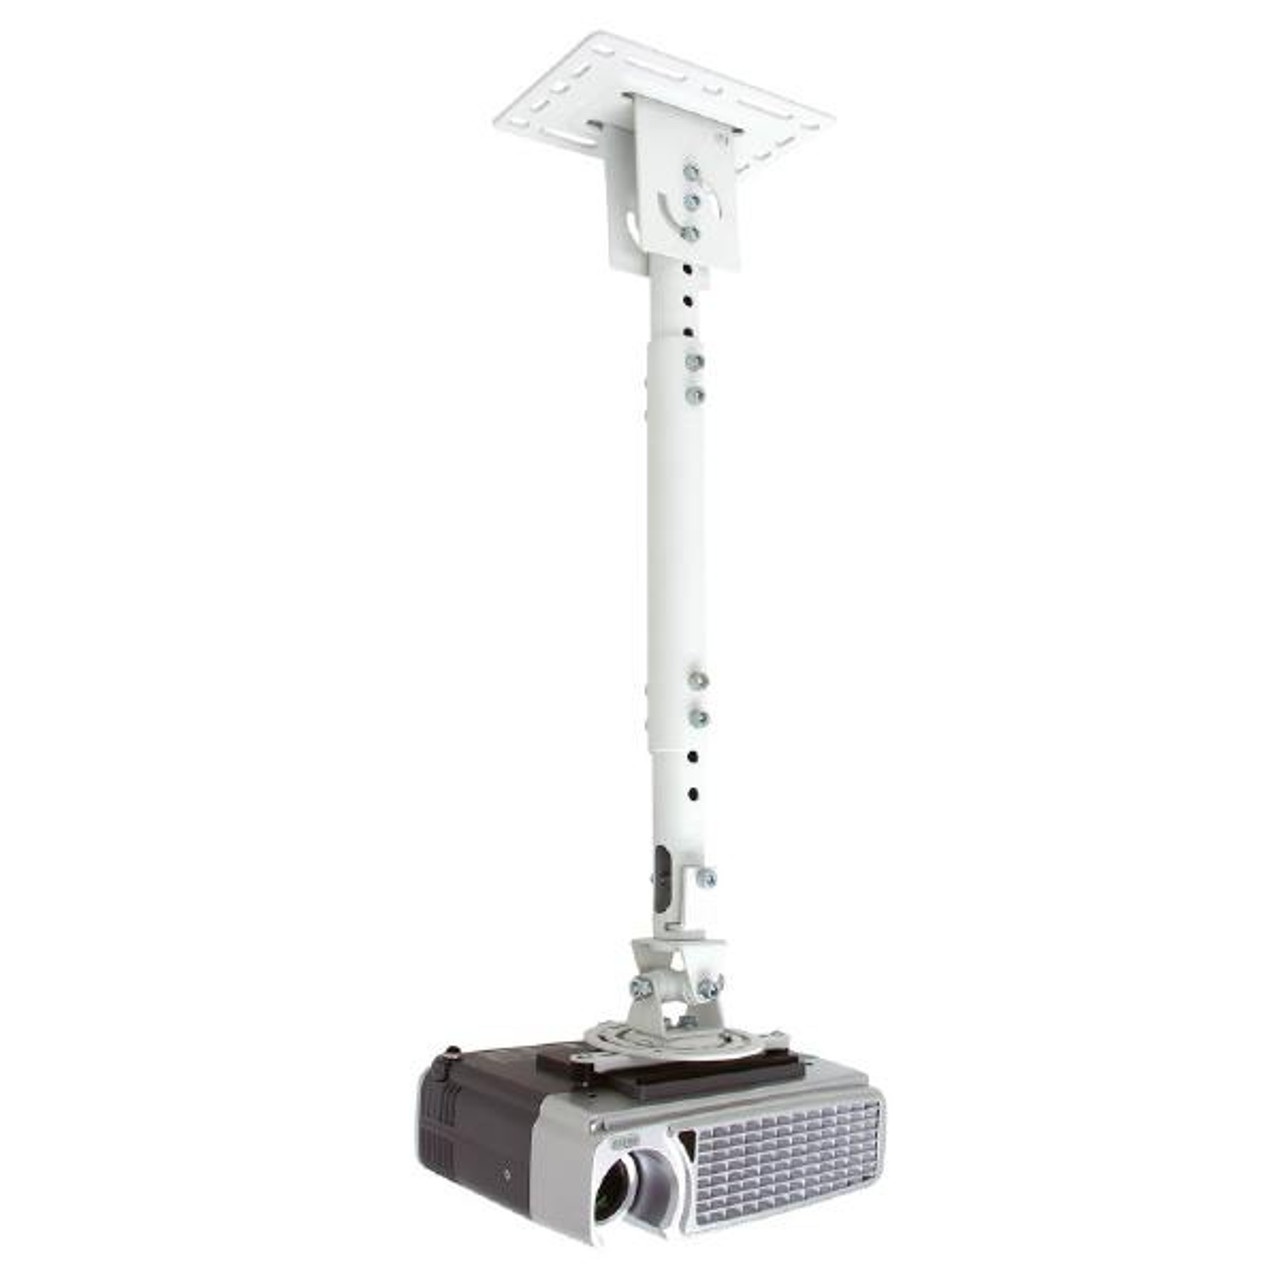 Product image for Atdec Telehook Projector Ceiling Mount | CX Computer Superstore